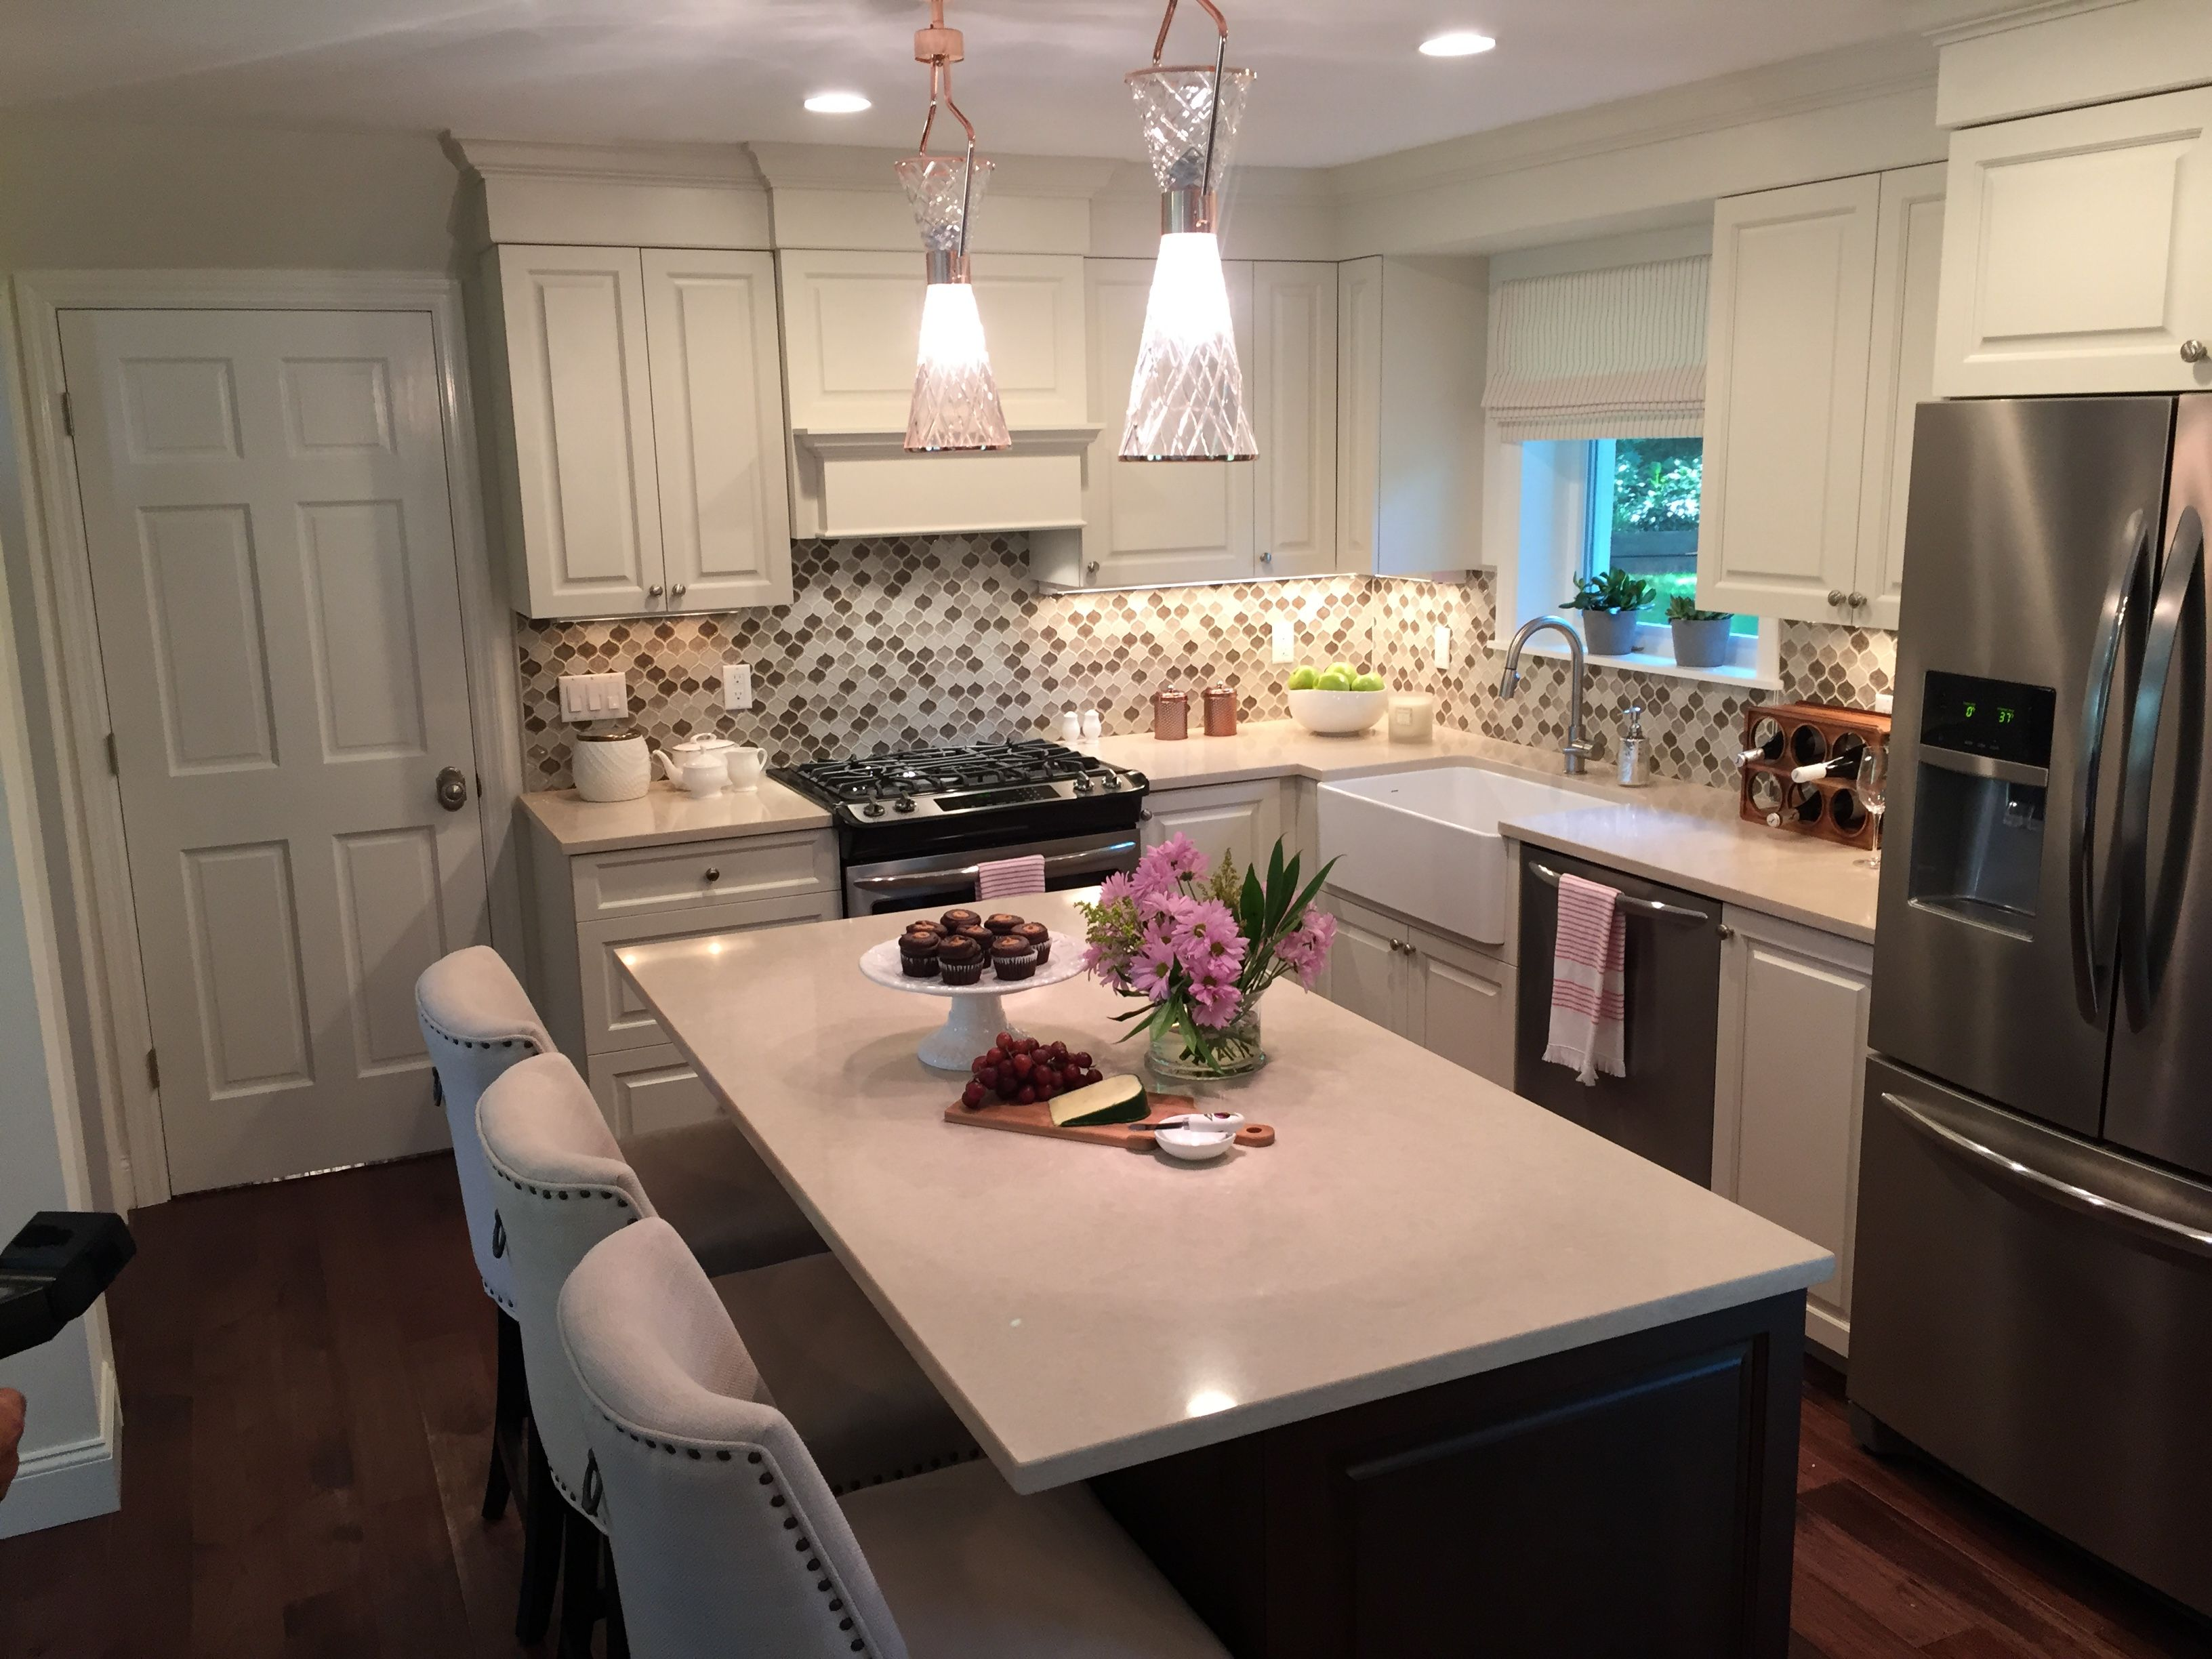 Hgtv Property Brothers Kitchen Designs